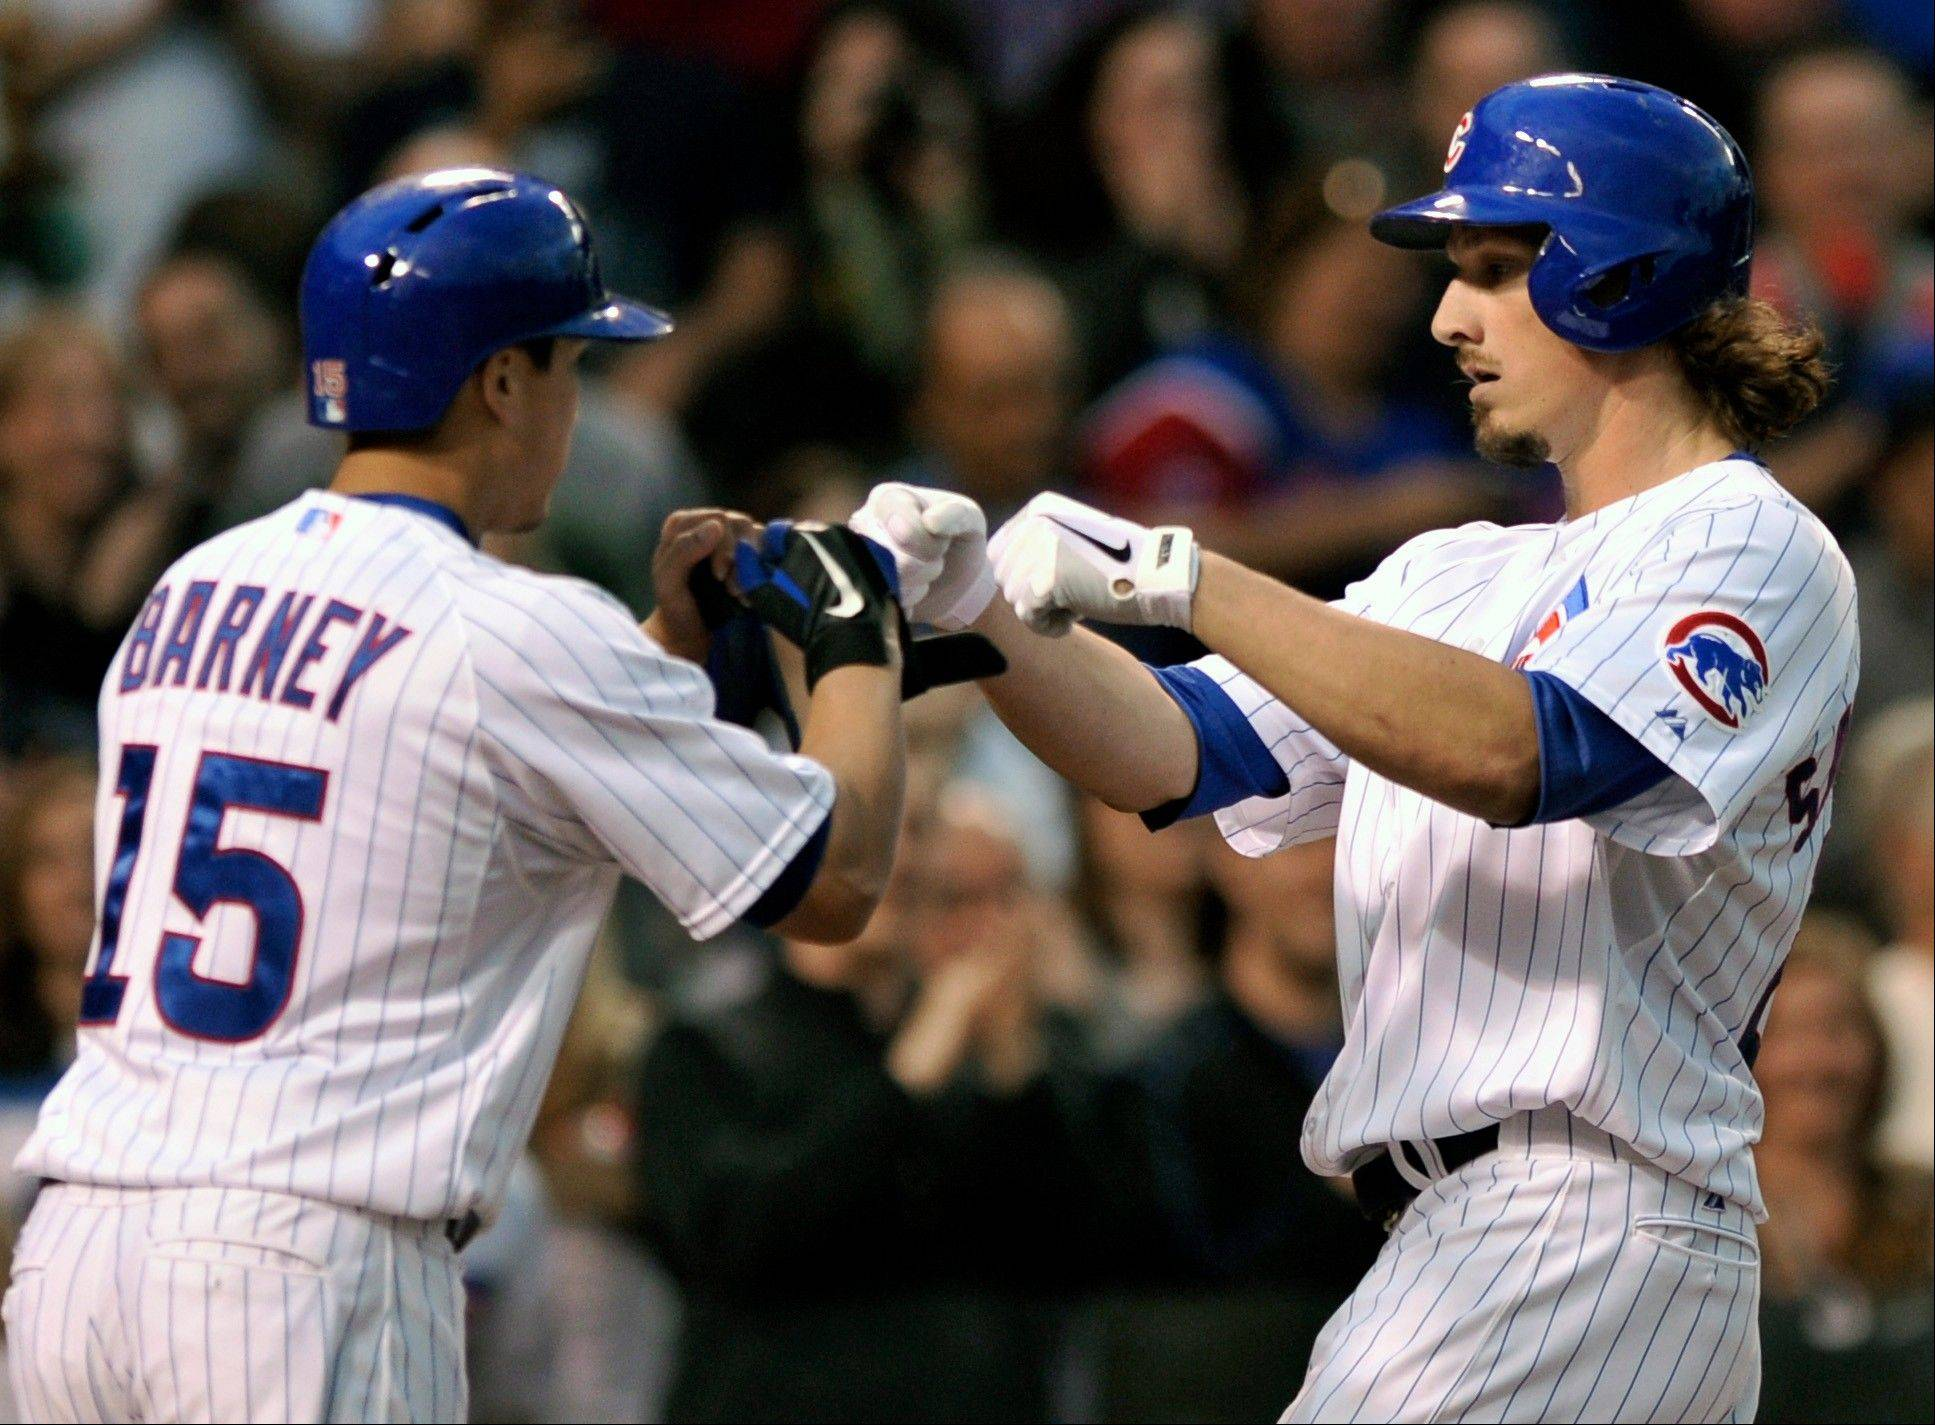 Chicago Cubs� Jeff Samardzija, right, celebrates with teammate Darwin Barney at home plate after hitting a two-run home run Wednesday at Wrigley Field. The Cubs beat the Colorado Rockies 6-3.